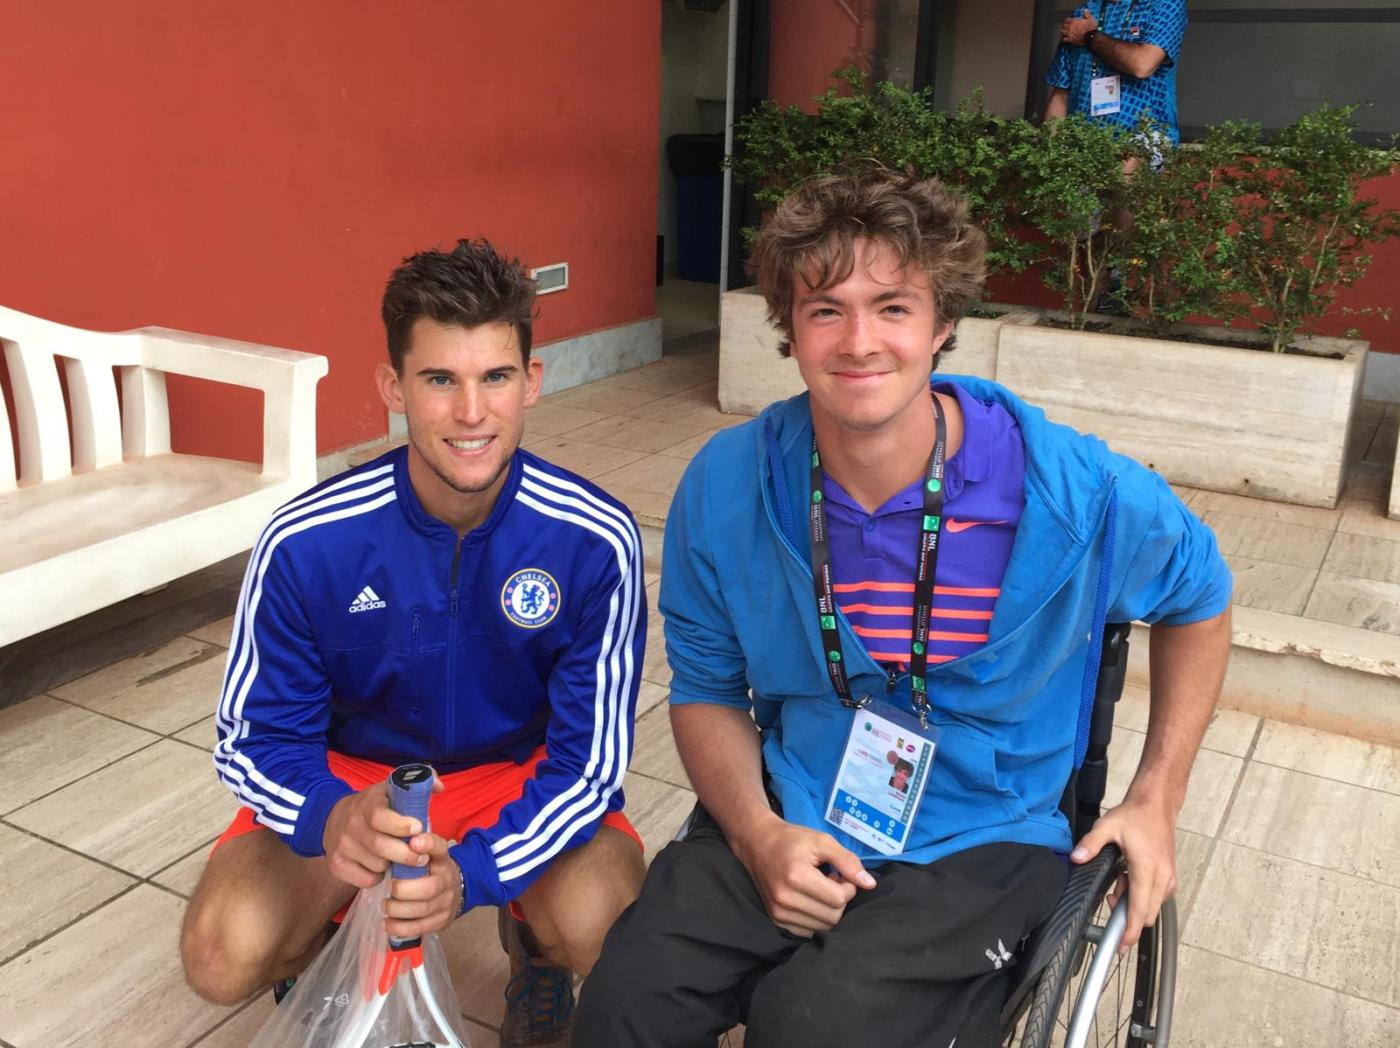 On the left kneeling Dominic Thiem, on the right in his wheelchair Nico Langmann.